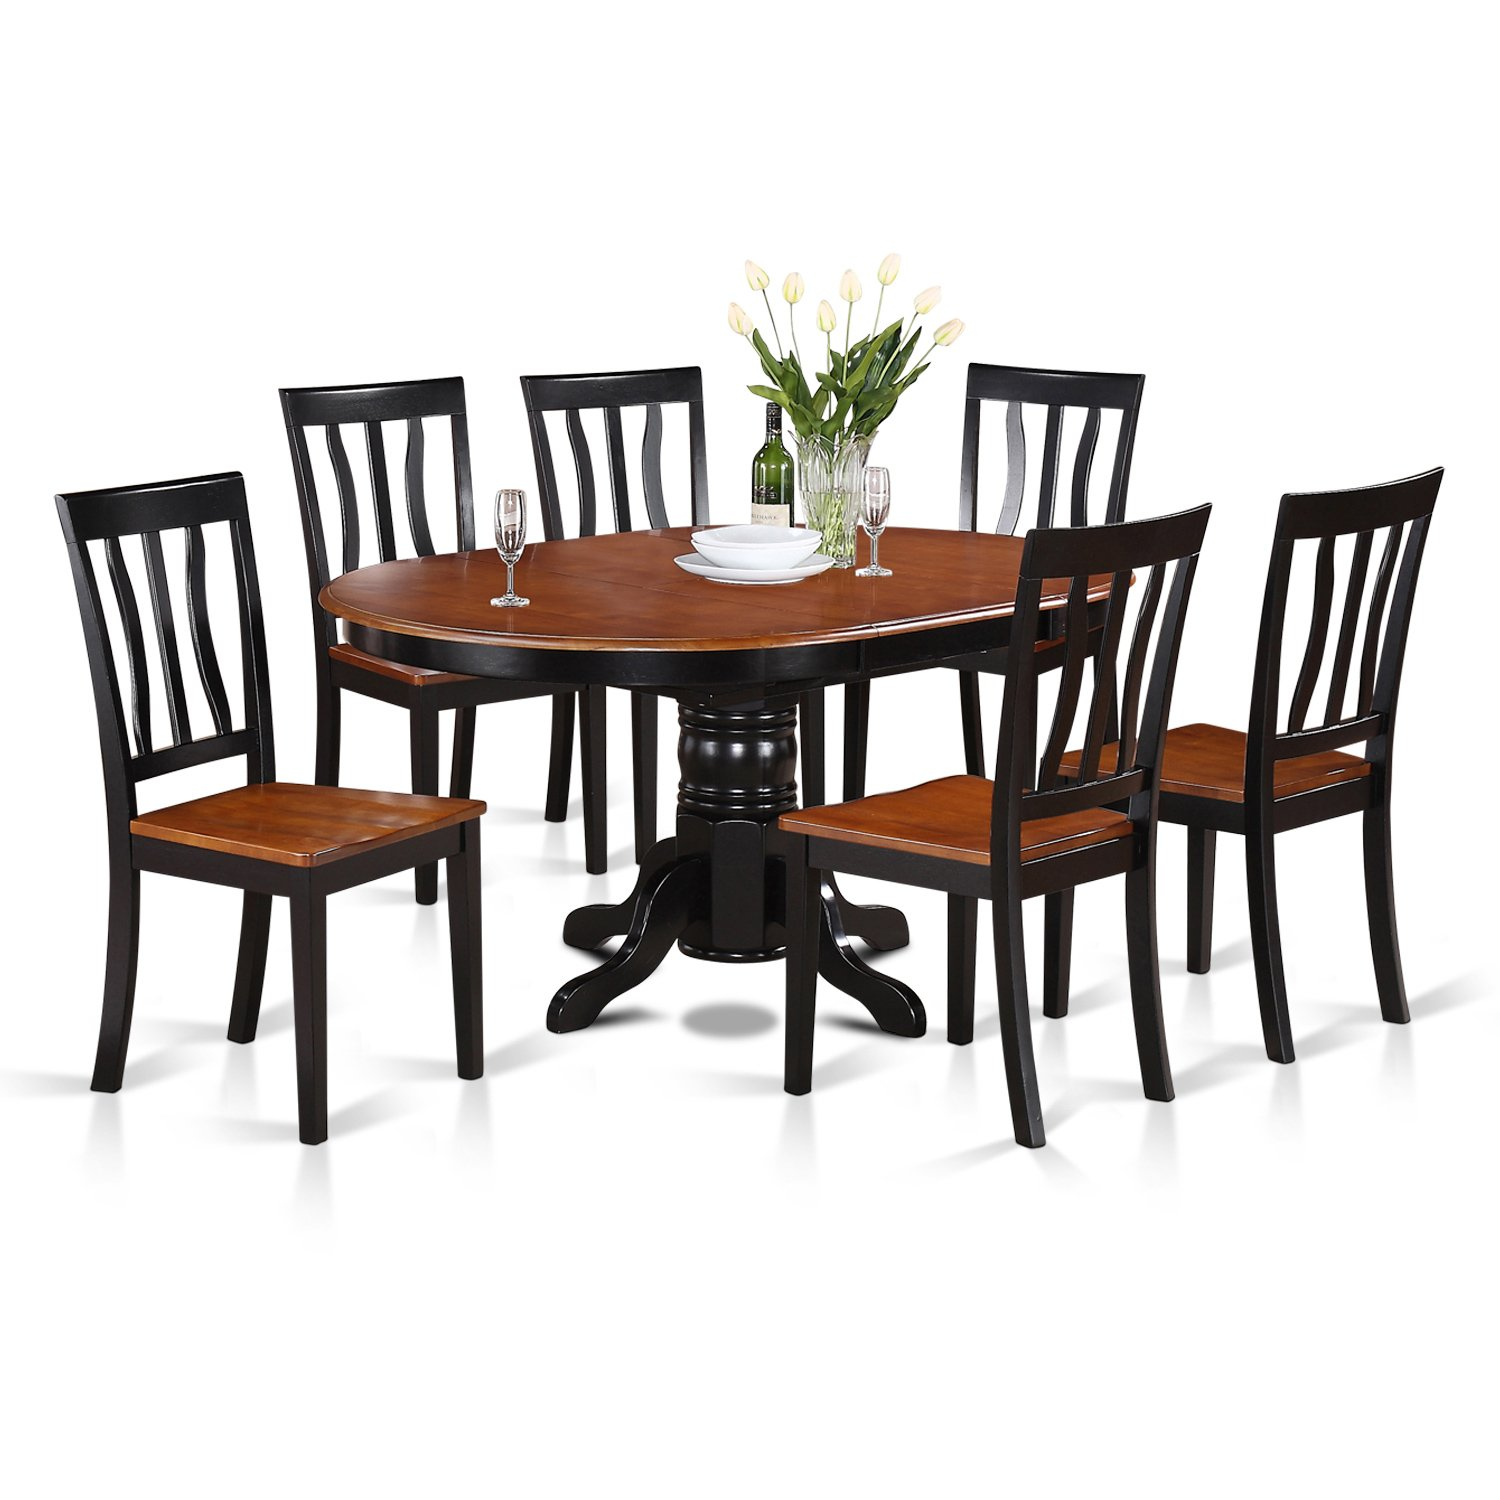 Amazon.com: East West Furniture AVAT7 BLK W 7 Piece Dining Table Set:  Kitchen U0026 Dining